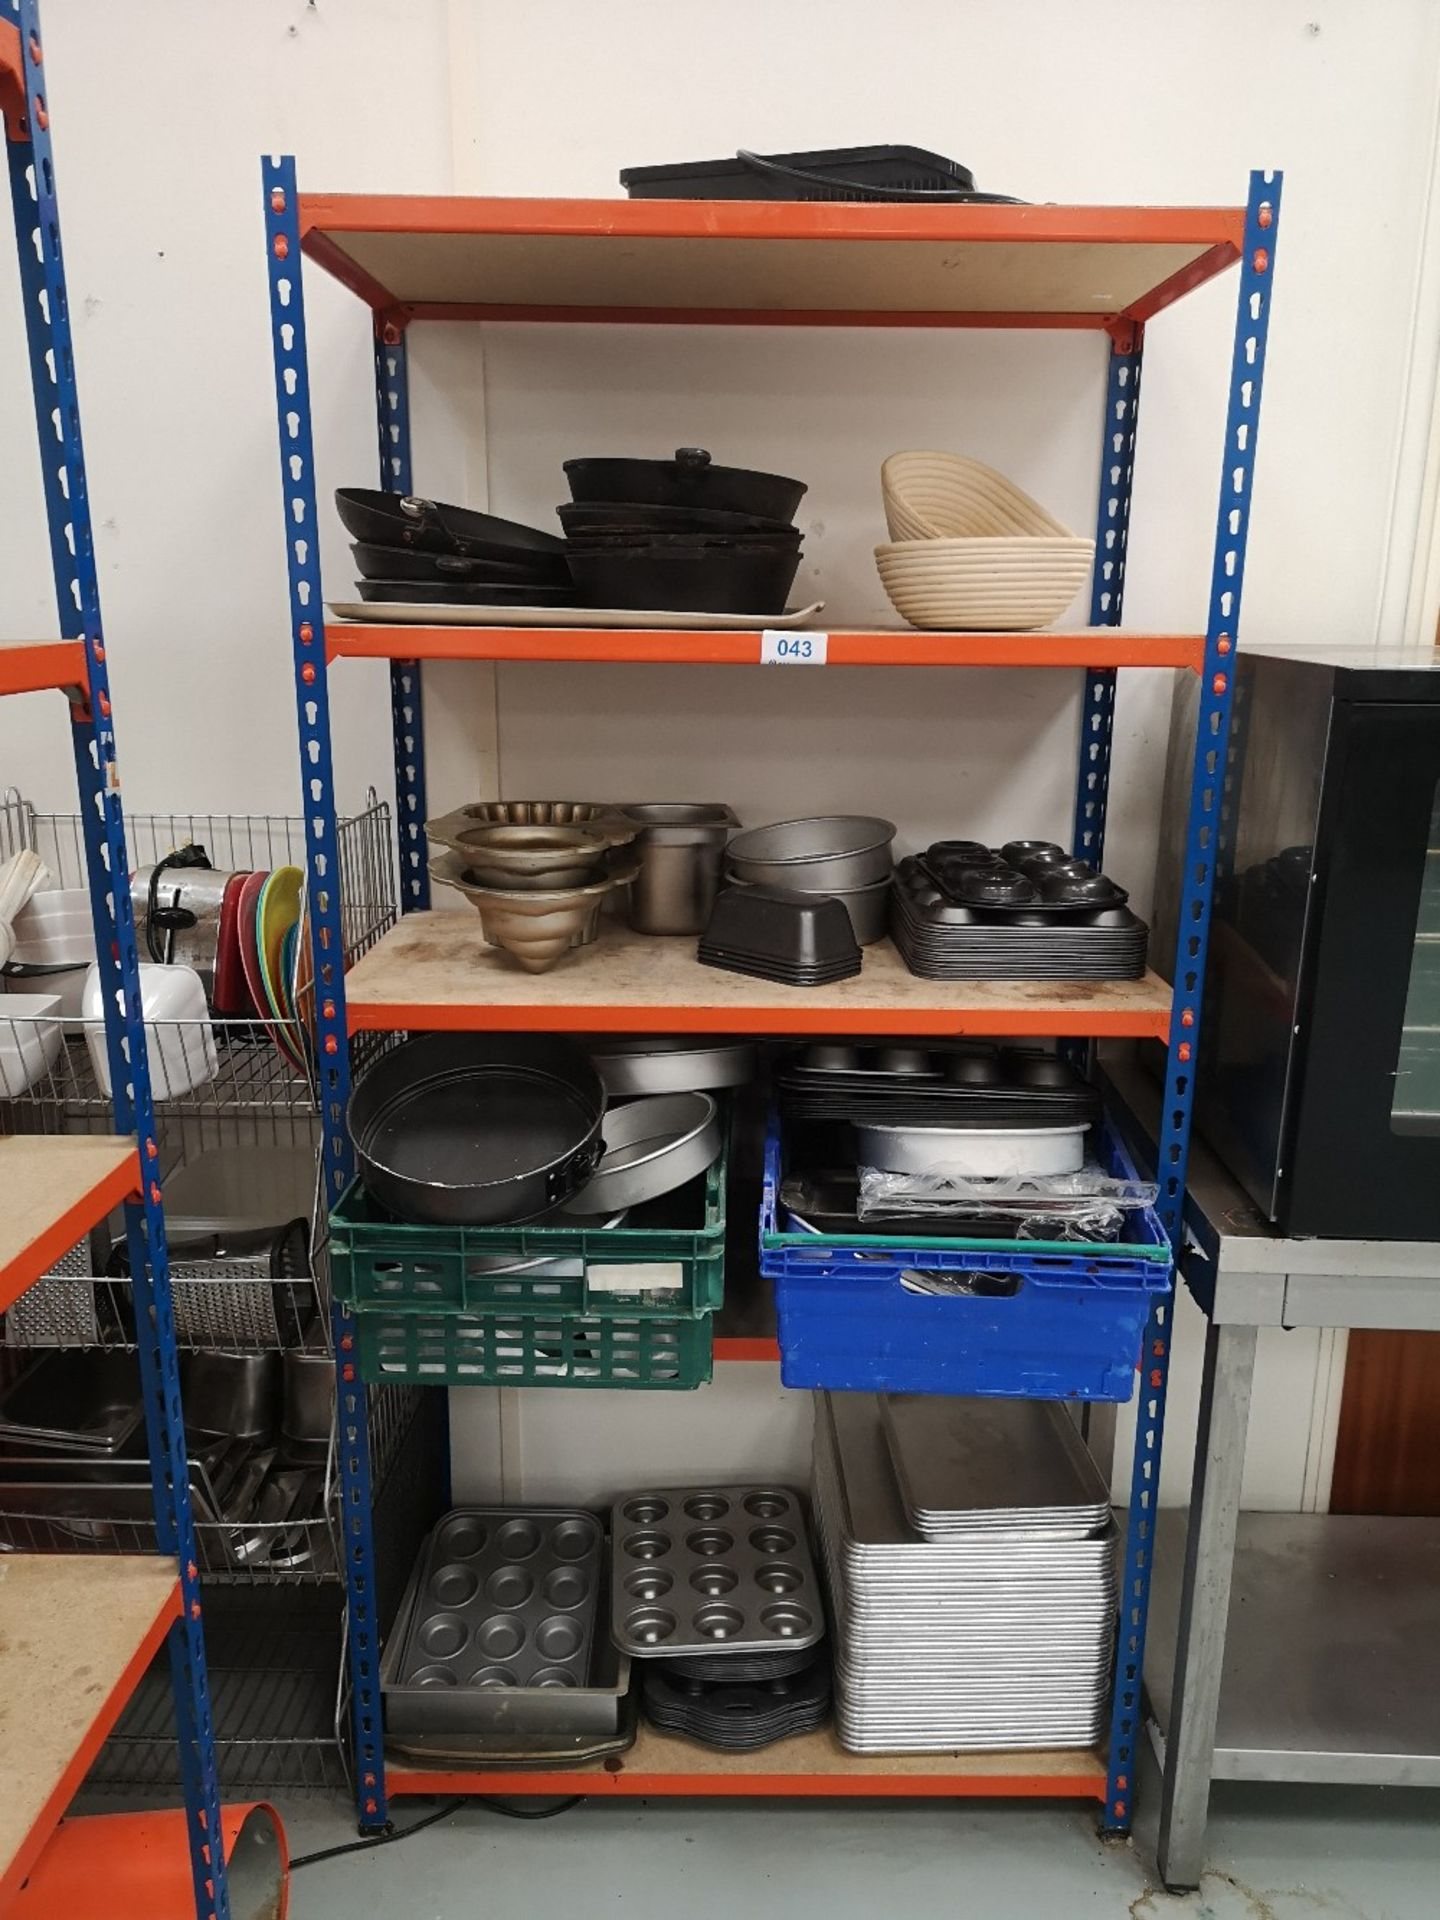 (3) Bays of Five Tier Shelving & Contents